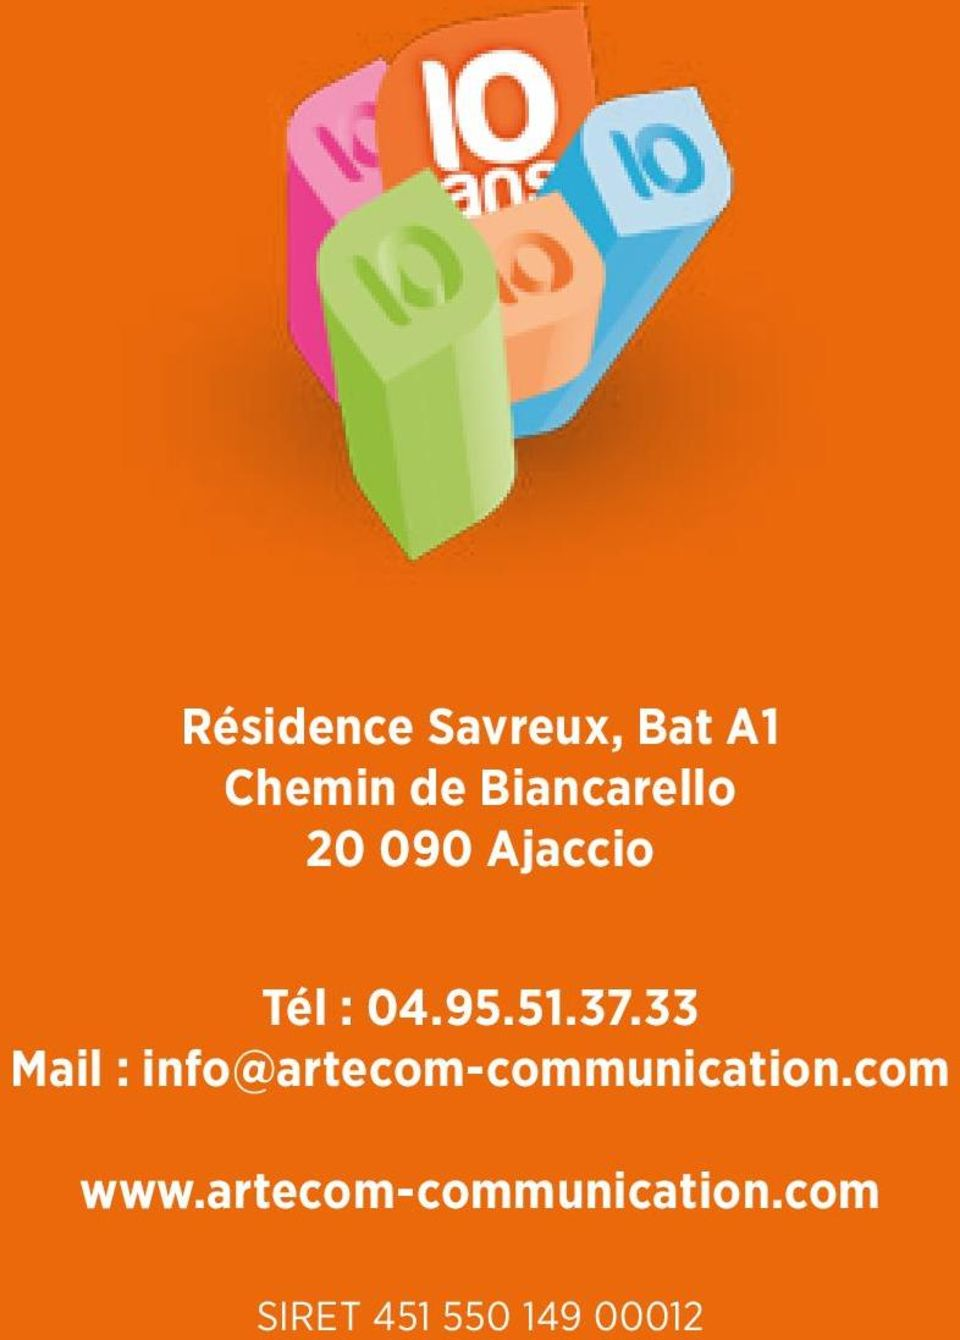 37.33 Mail : info@artecom-communication.